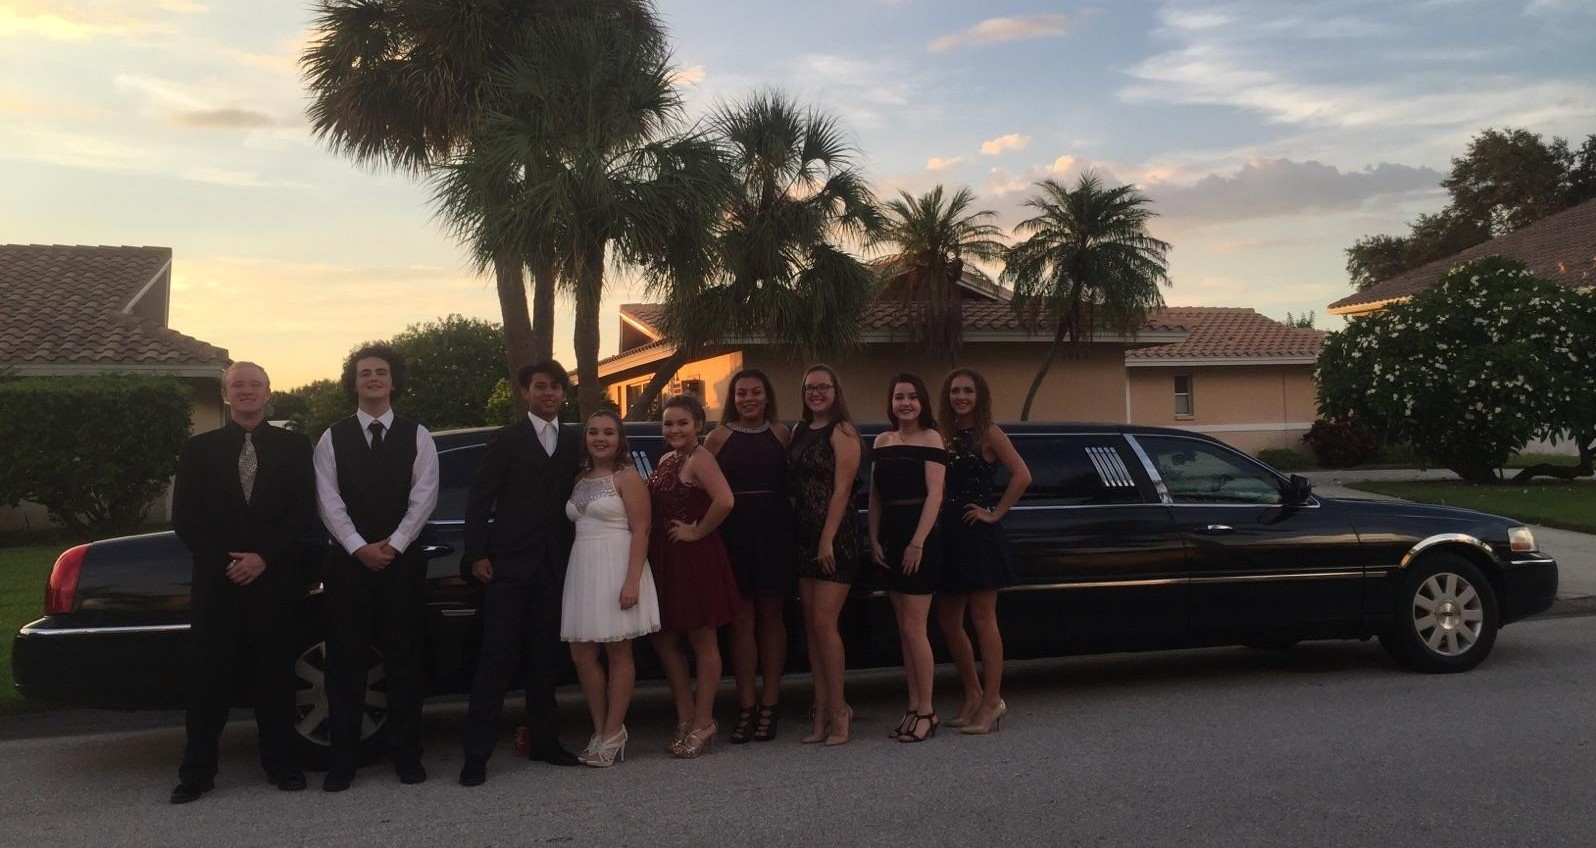 Homecoming Group with Town Car Limo